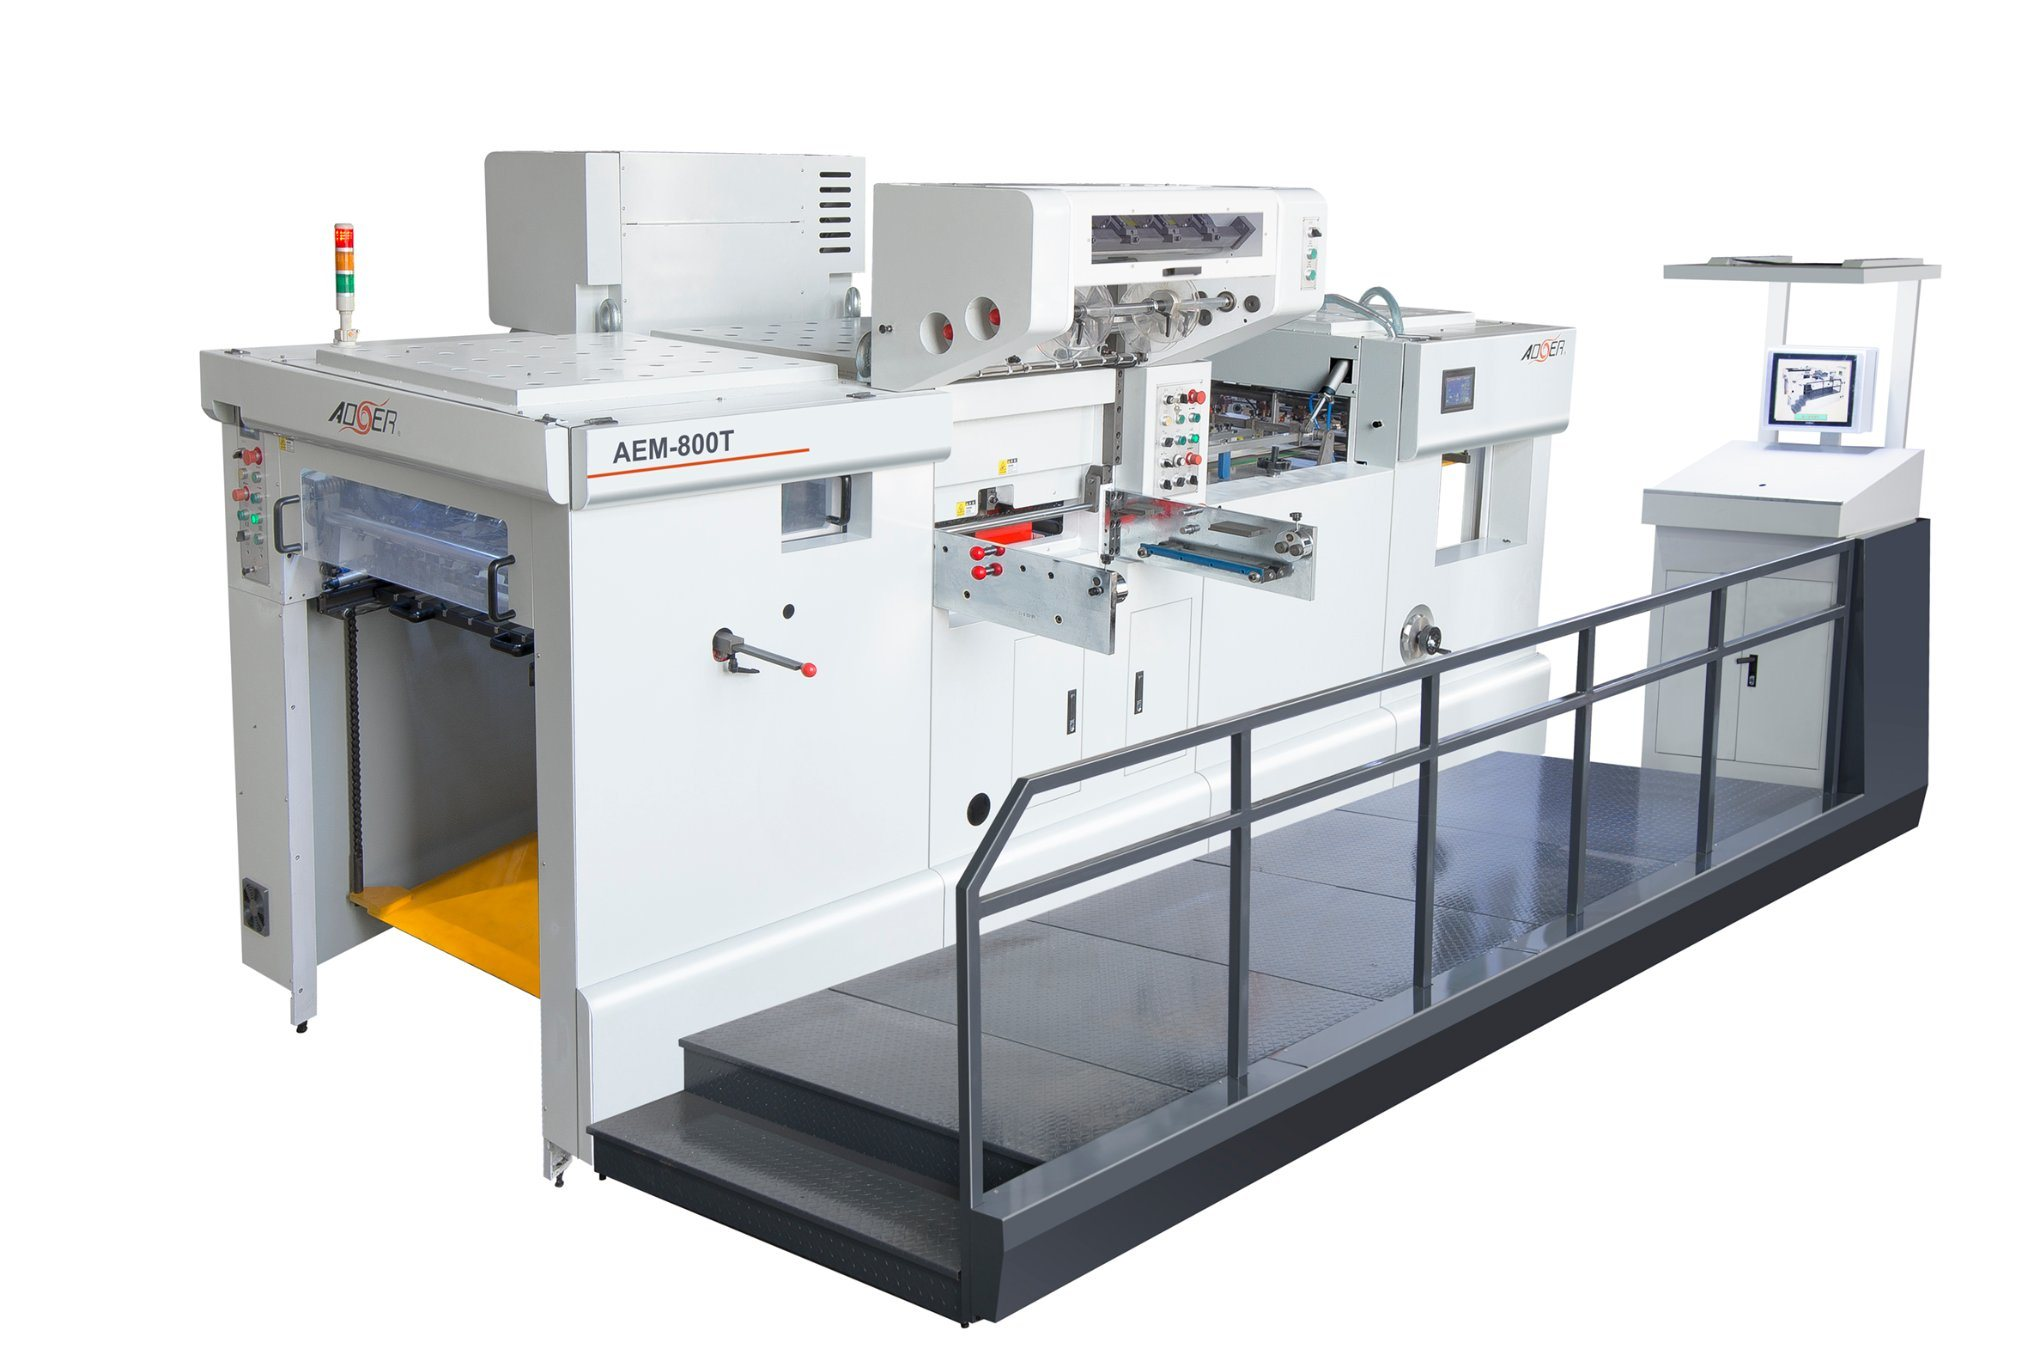 AEM-800t Automatic Hot Stamping & Die Cutting Machine